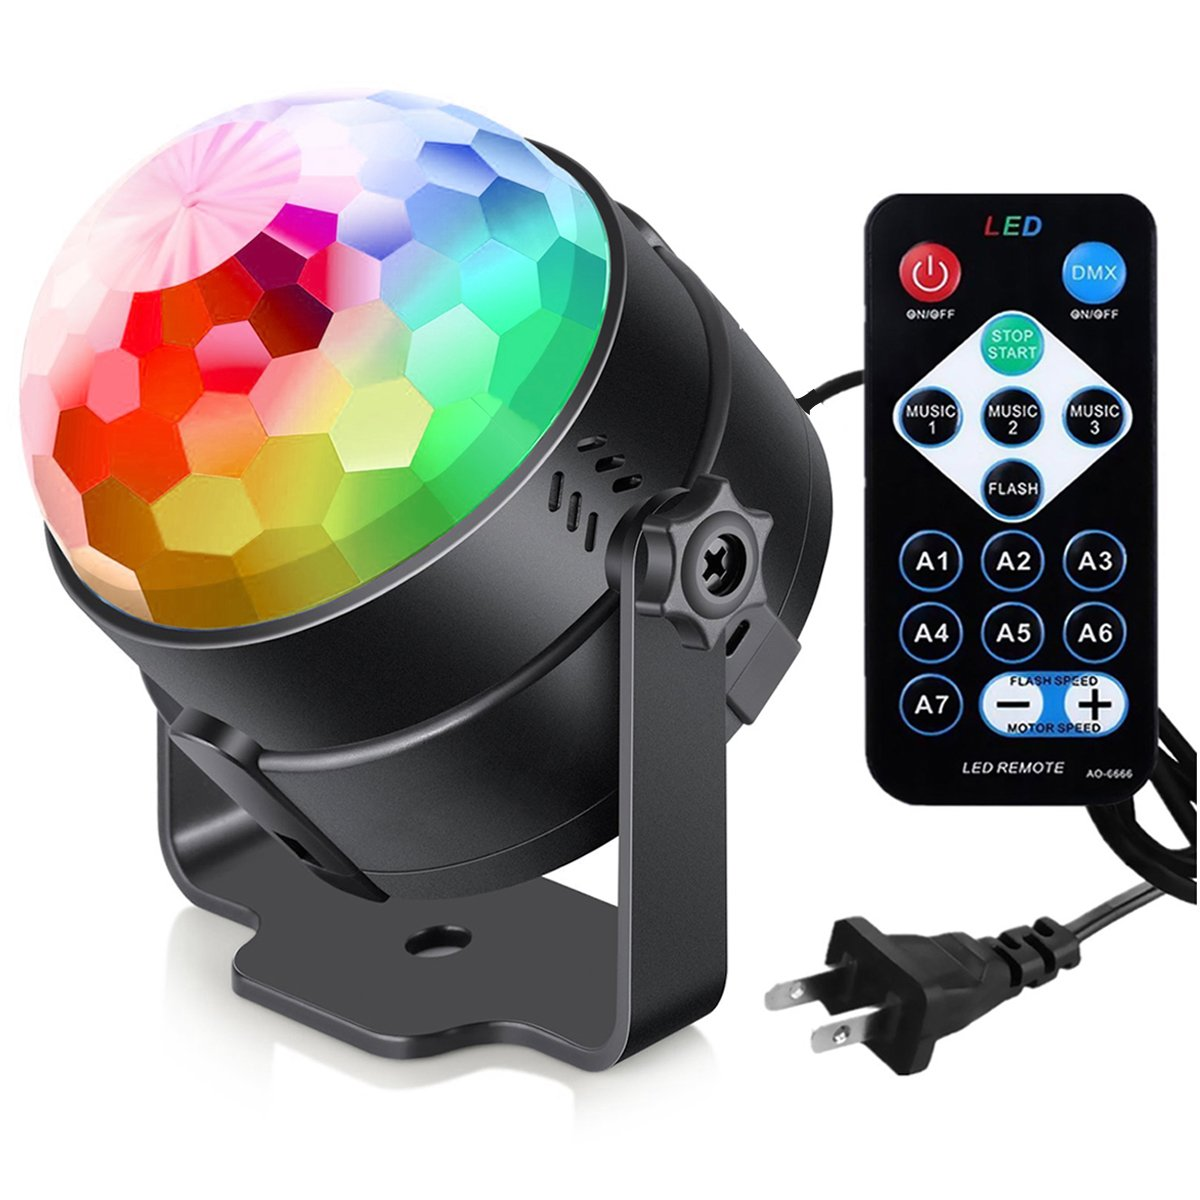 Disco light with remote control